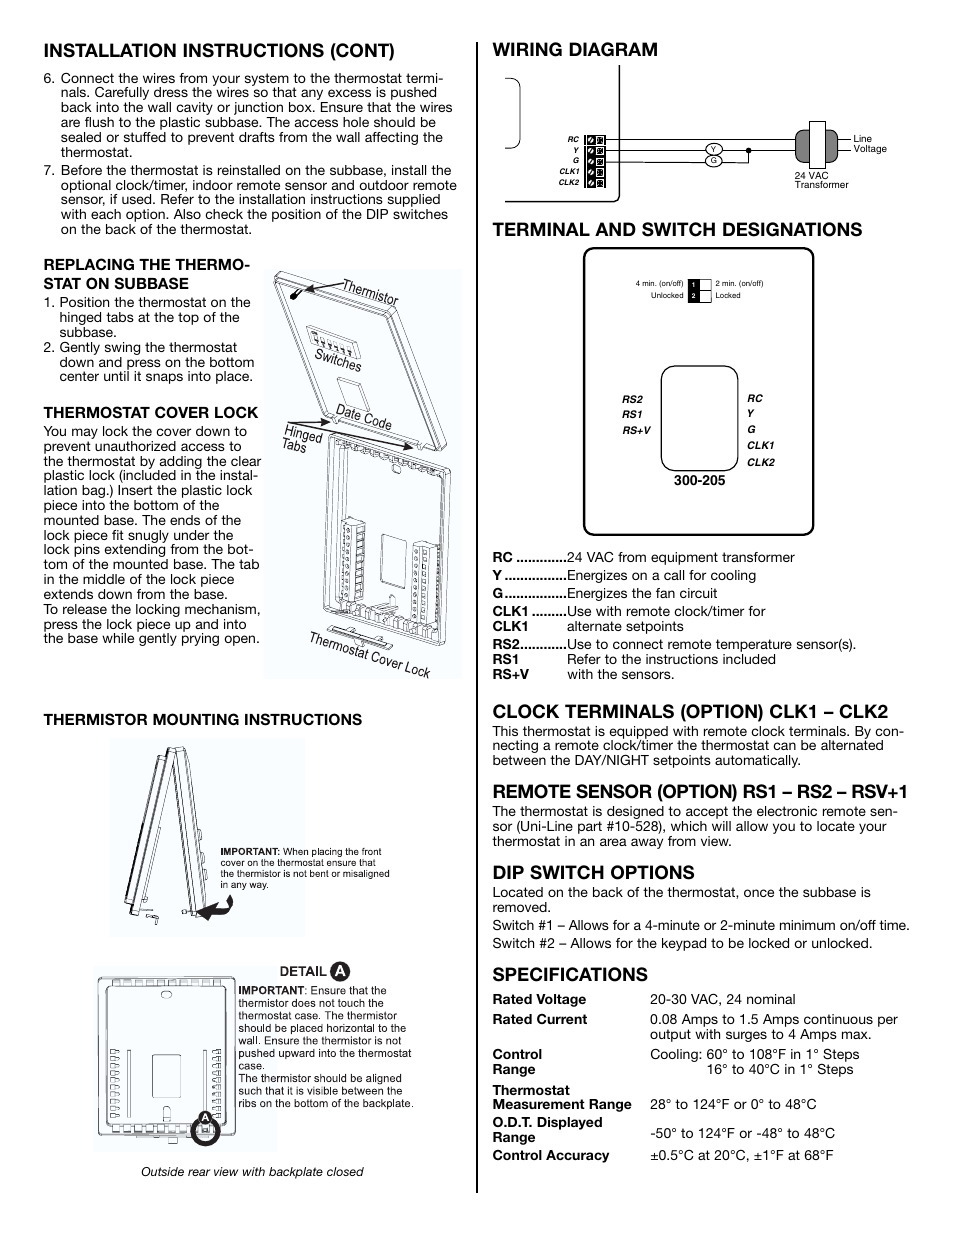 Installation instructions (cont), Wiring diagram terminal ... on